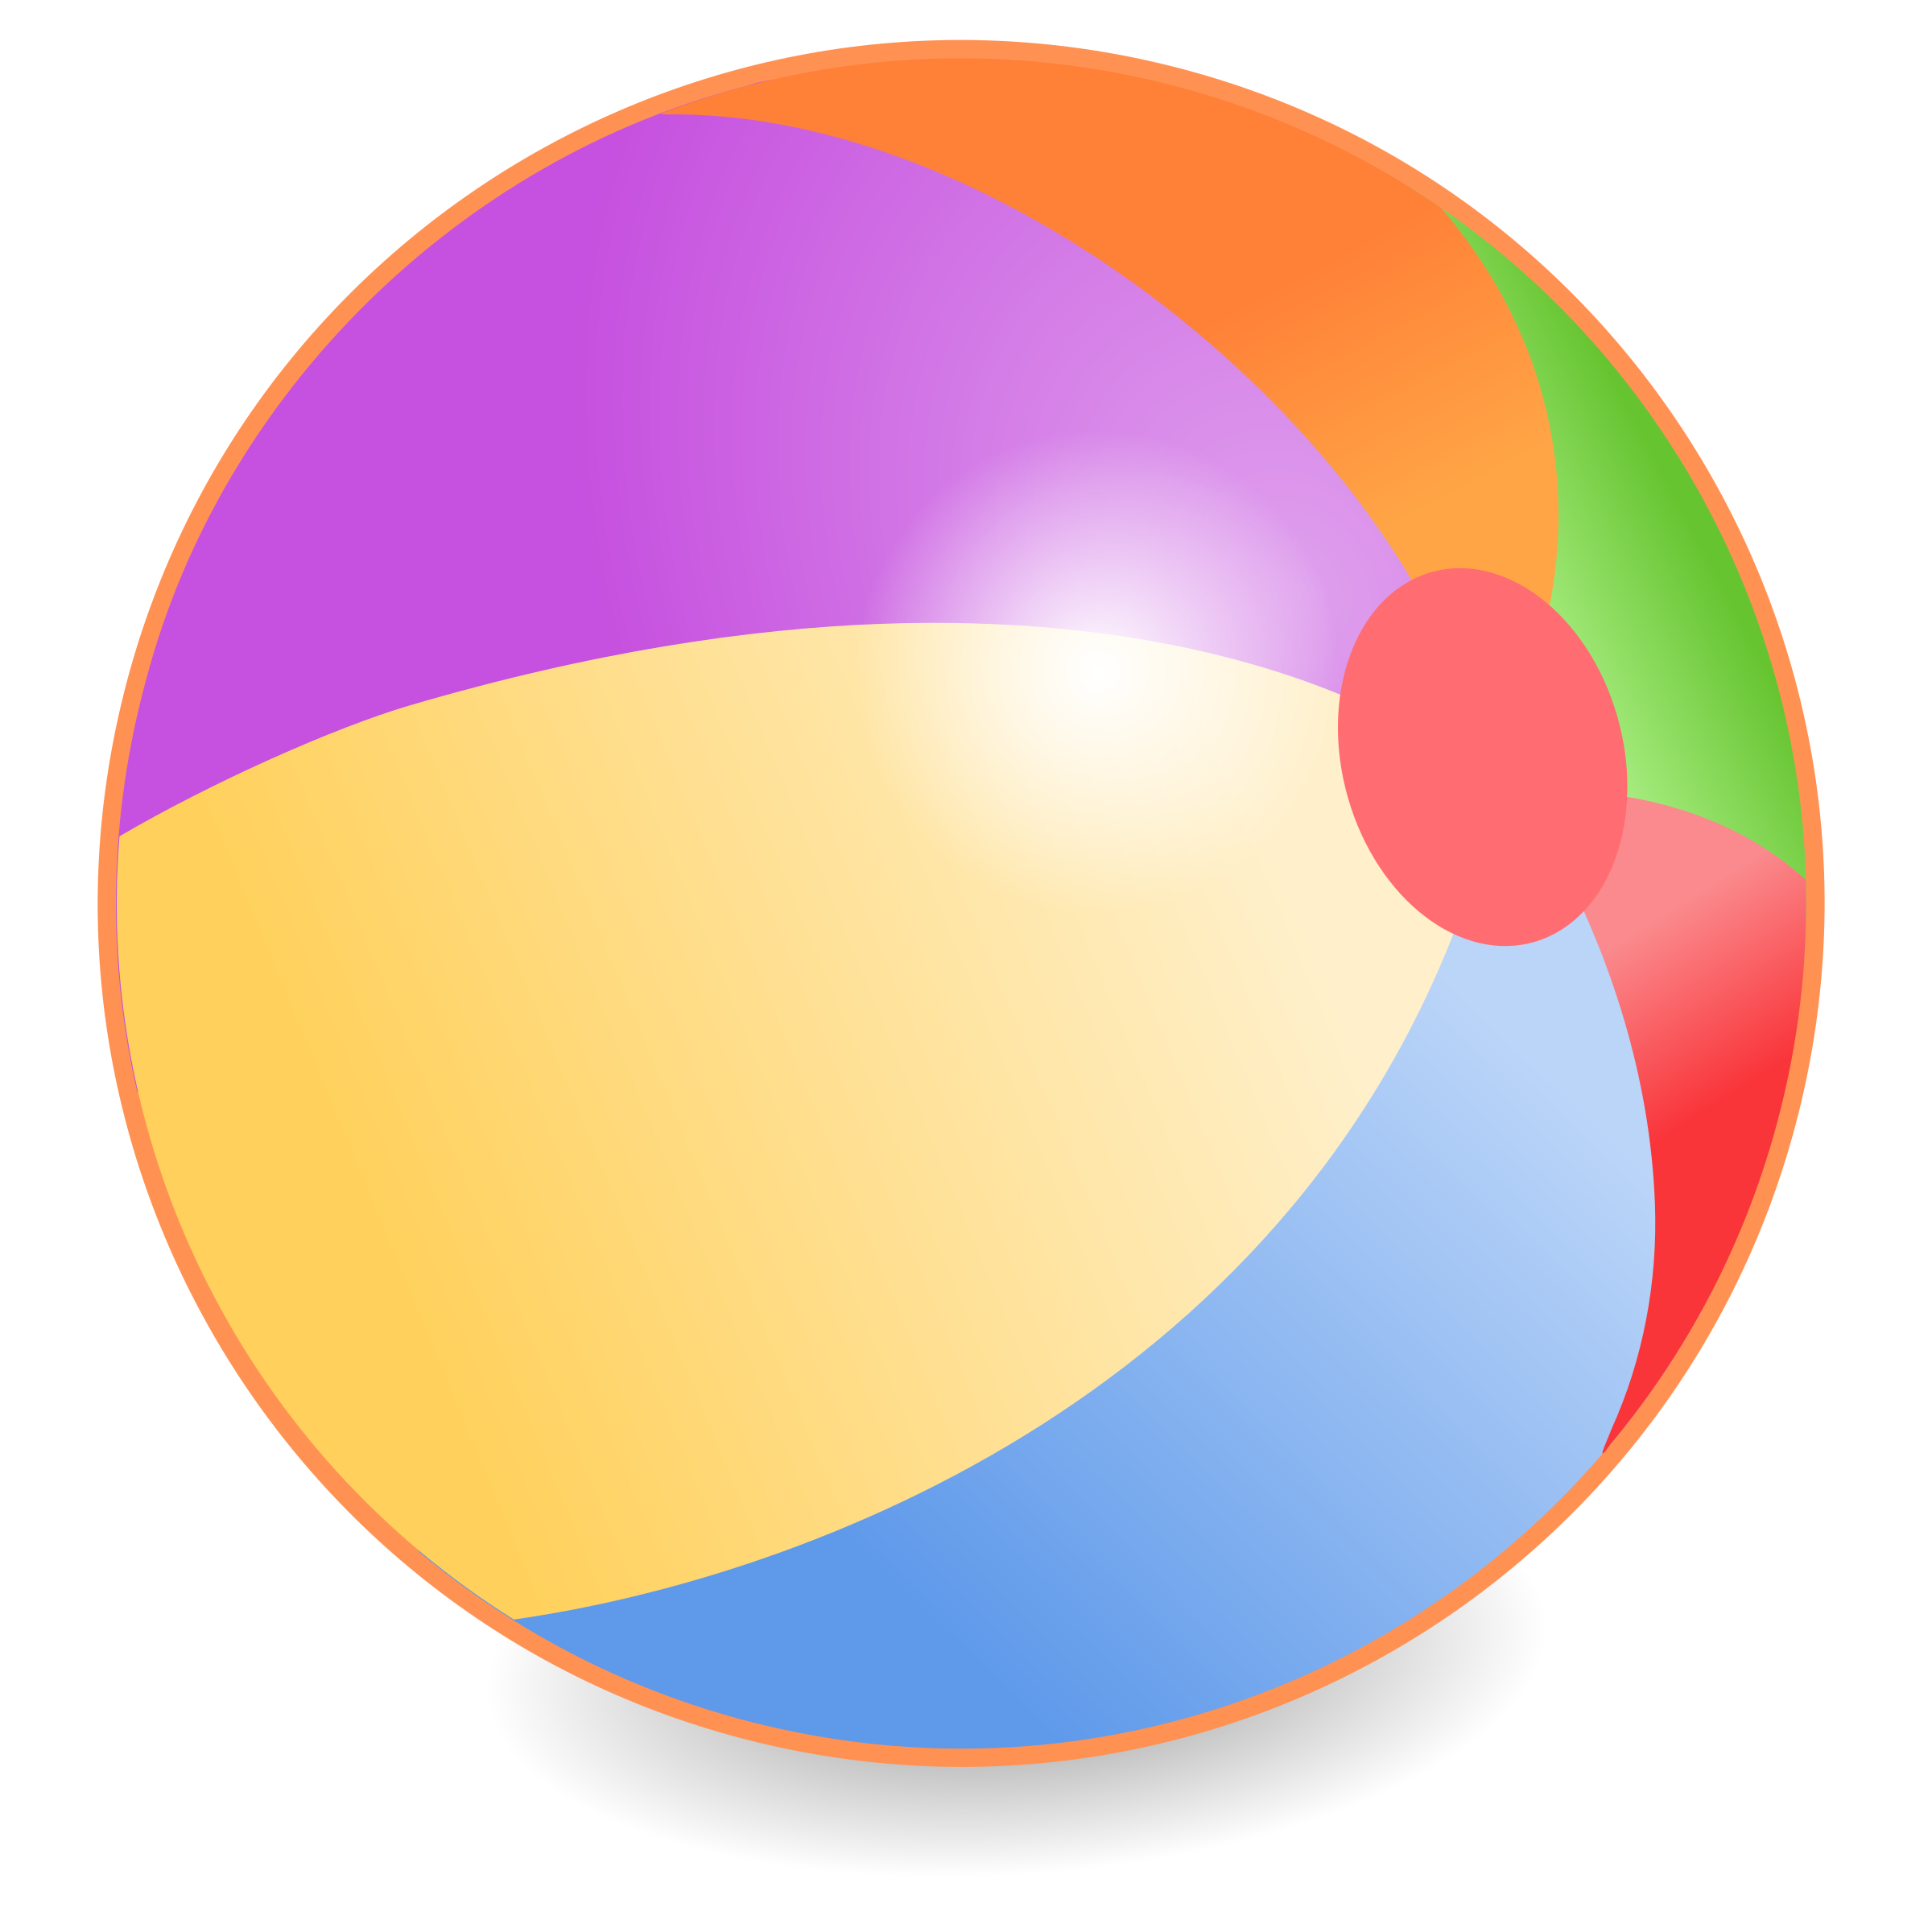 Beachball clipart. Big image png